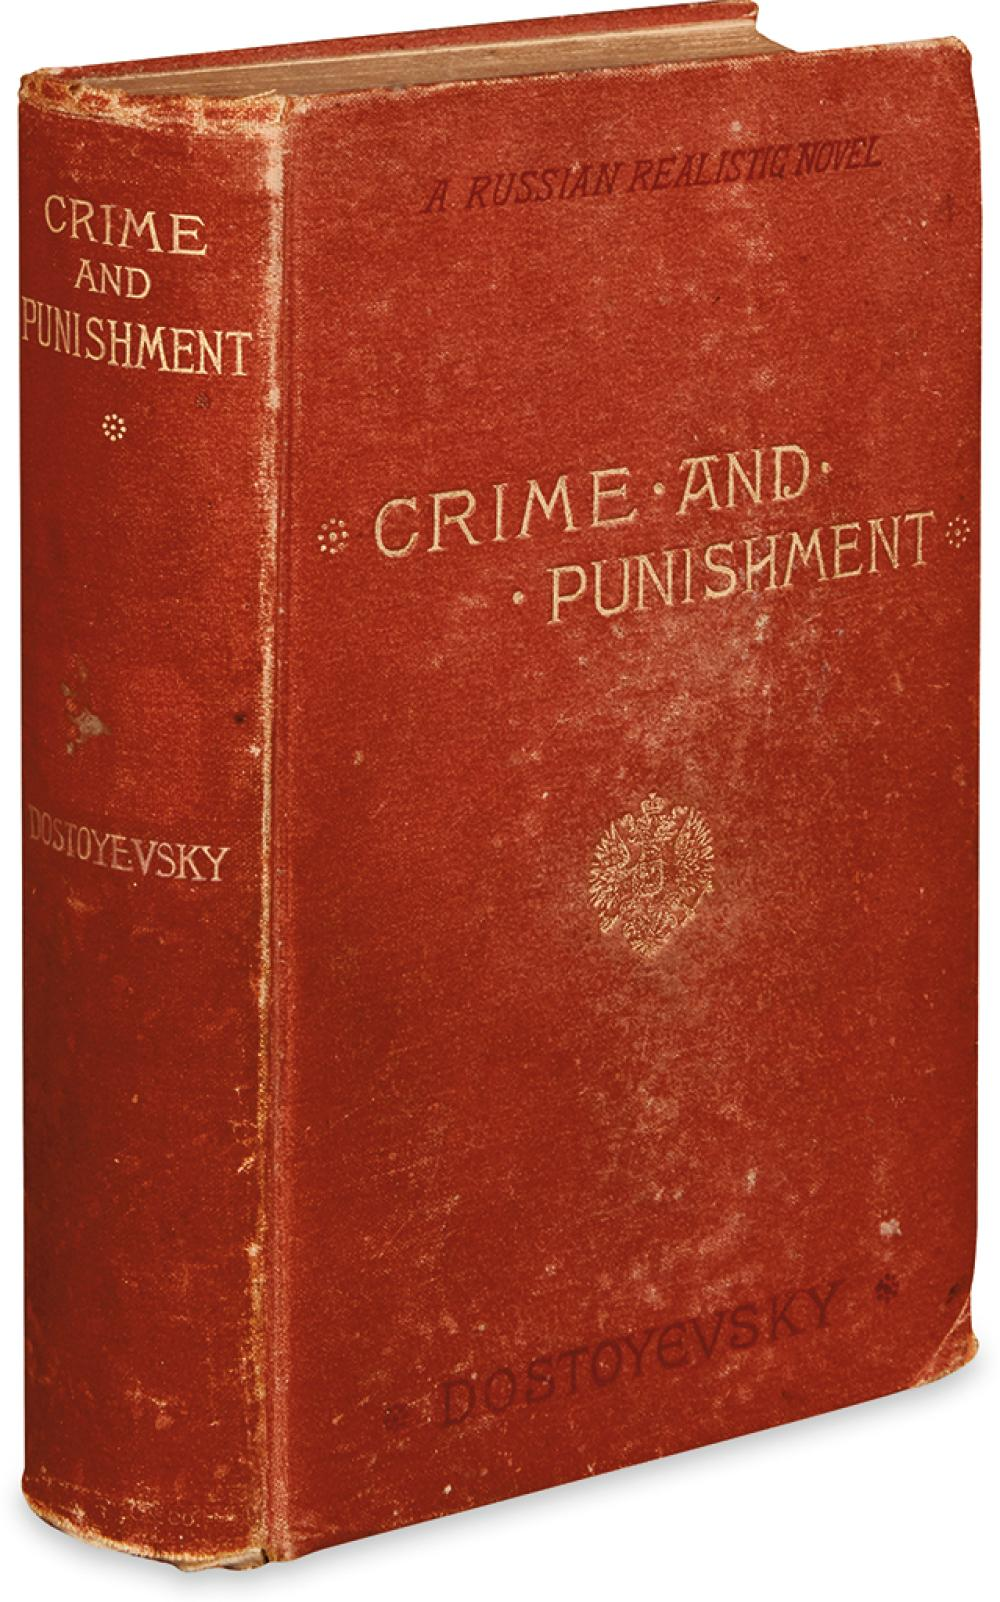 DOSTOYEVSKY, FEODOR. Crime and Punishment. A Russian Realistic Novel.